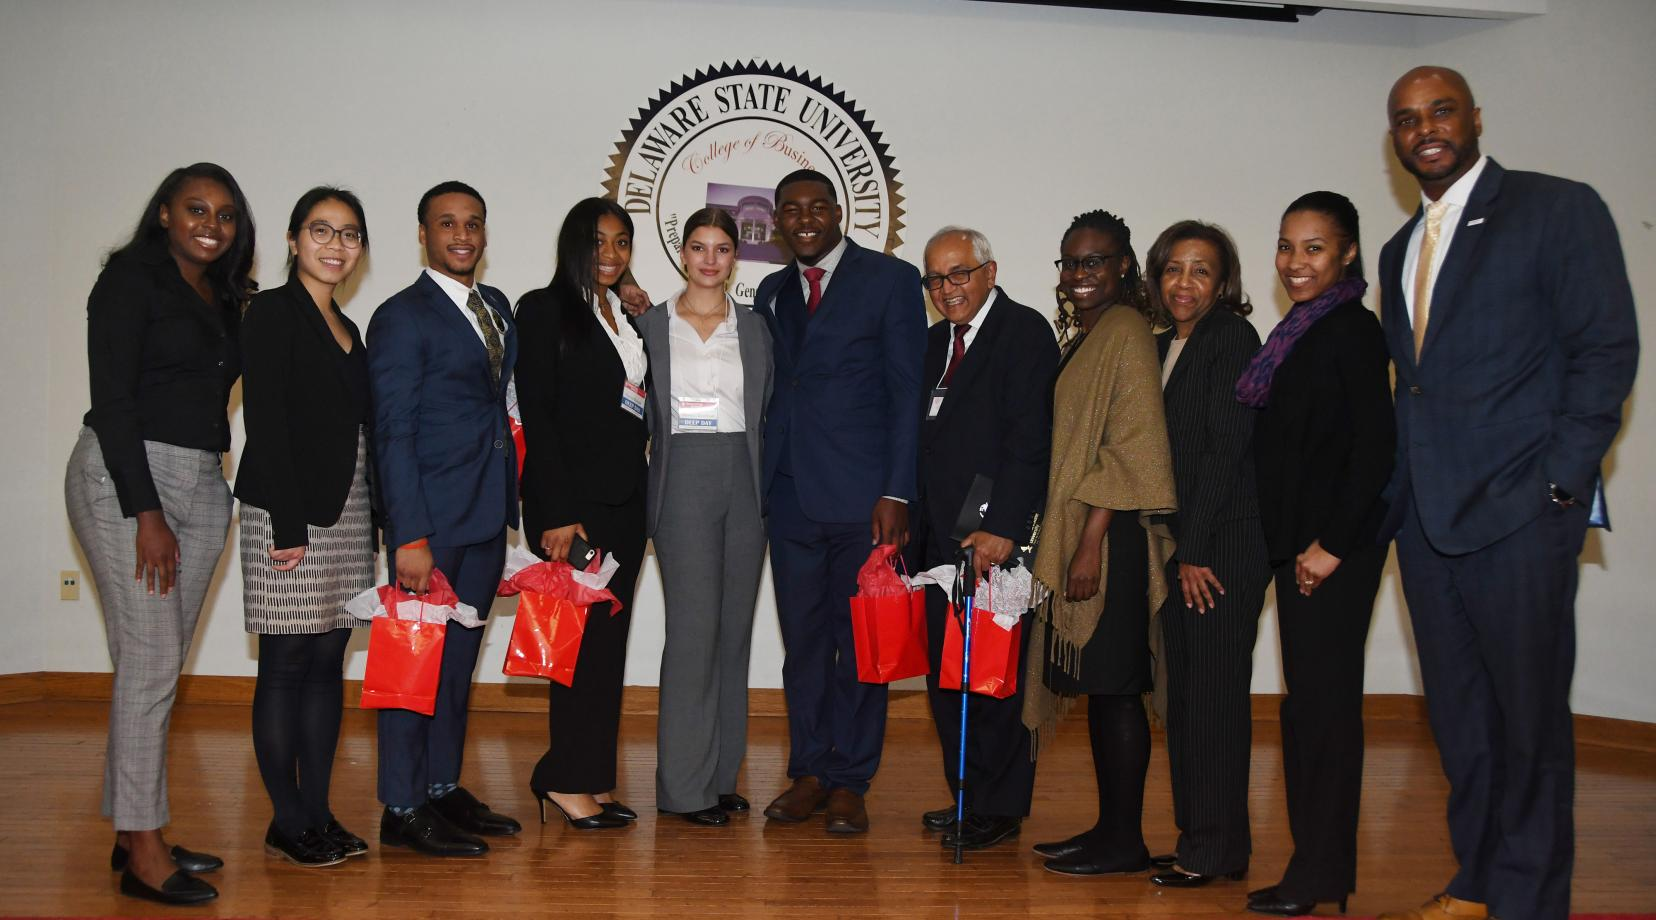 The Gates visitors pose with the Project LEAD Business Case Competition winners during the College of Business' Deep Day. (L-r) Gates team members, Lillian Williams and Julie Ngyuen; students Chris Whitney-Smith, Coreia Benson, Bianca Jacobson and Tysun Hicks, advisor Dr. Chandrakant P. Ganatra; and American Institute for Research members Deaweh Benson, Dr. Kathy Thompson and Dr. Montrisha Williams, along with Acting Dean Michael Casson Jr.